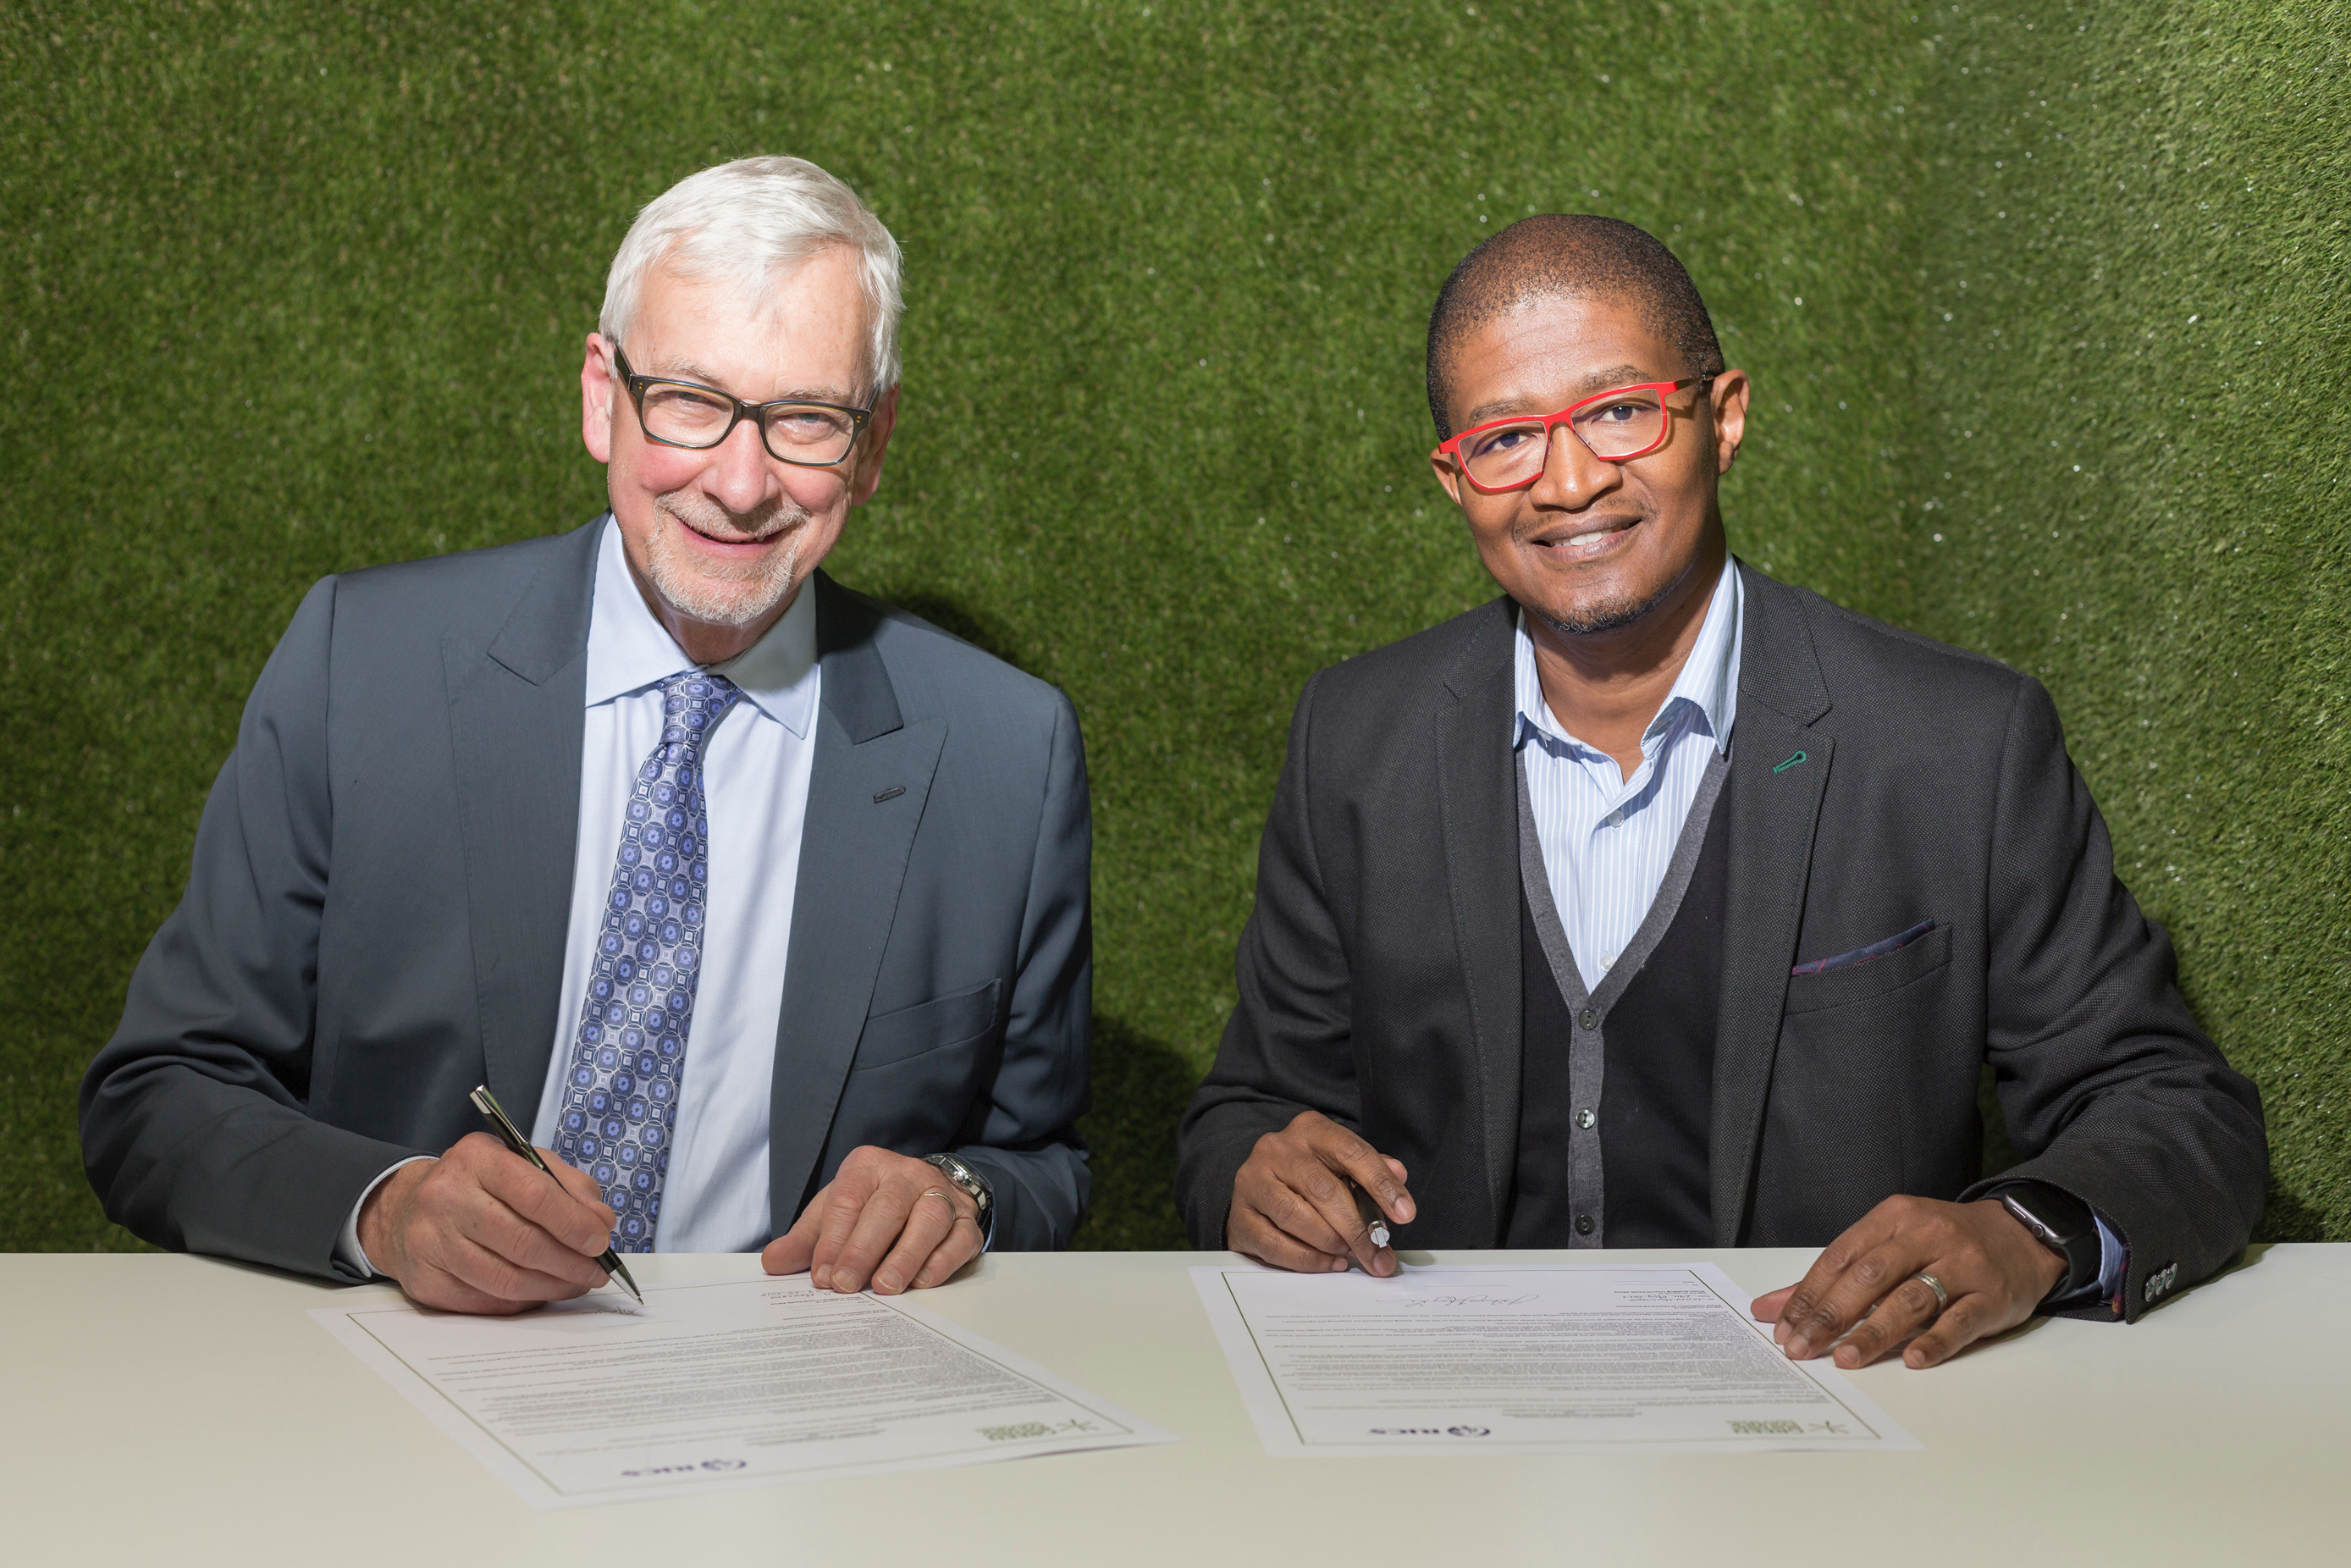 RICS president, John Hughes and GBCSA non-executive deputy chair, Nkosinathi Manzana, sign a memorandum of agreement at the RICS Summit Africa.